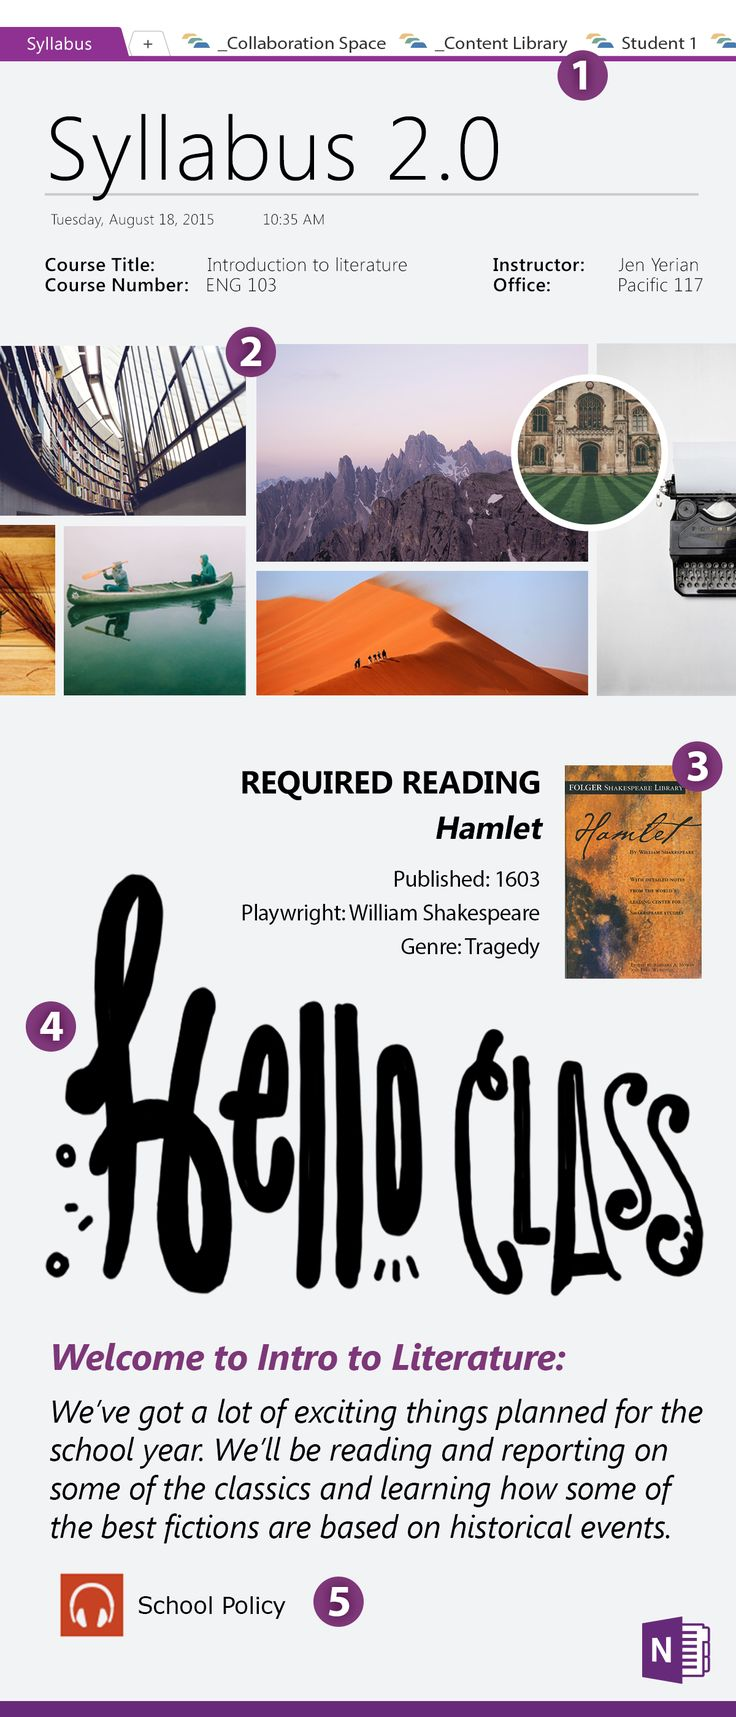 Prepping for back to school? Engage your students from day one by creating a visual & informative syllabus. 1: Use tabs to organize assignments. 2: Give a curriculum sneak peek by making a mood board. 3: Don't just tell them about assigned reading, show them! 4: Welcome your students with a more personal introduction. 5: Pre-record policies and procedures so when it's time to give the rundown, you can just hit play. When you're done, share your syllabus with the entire class.